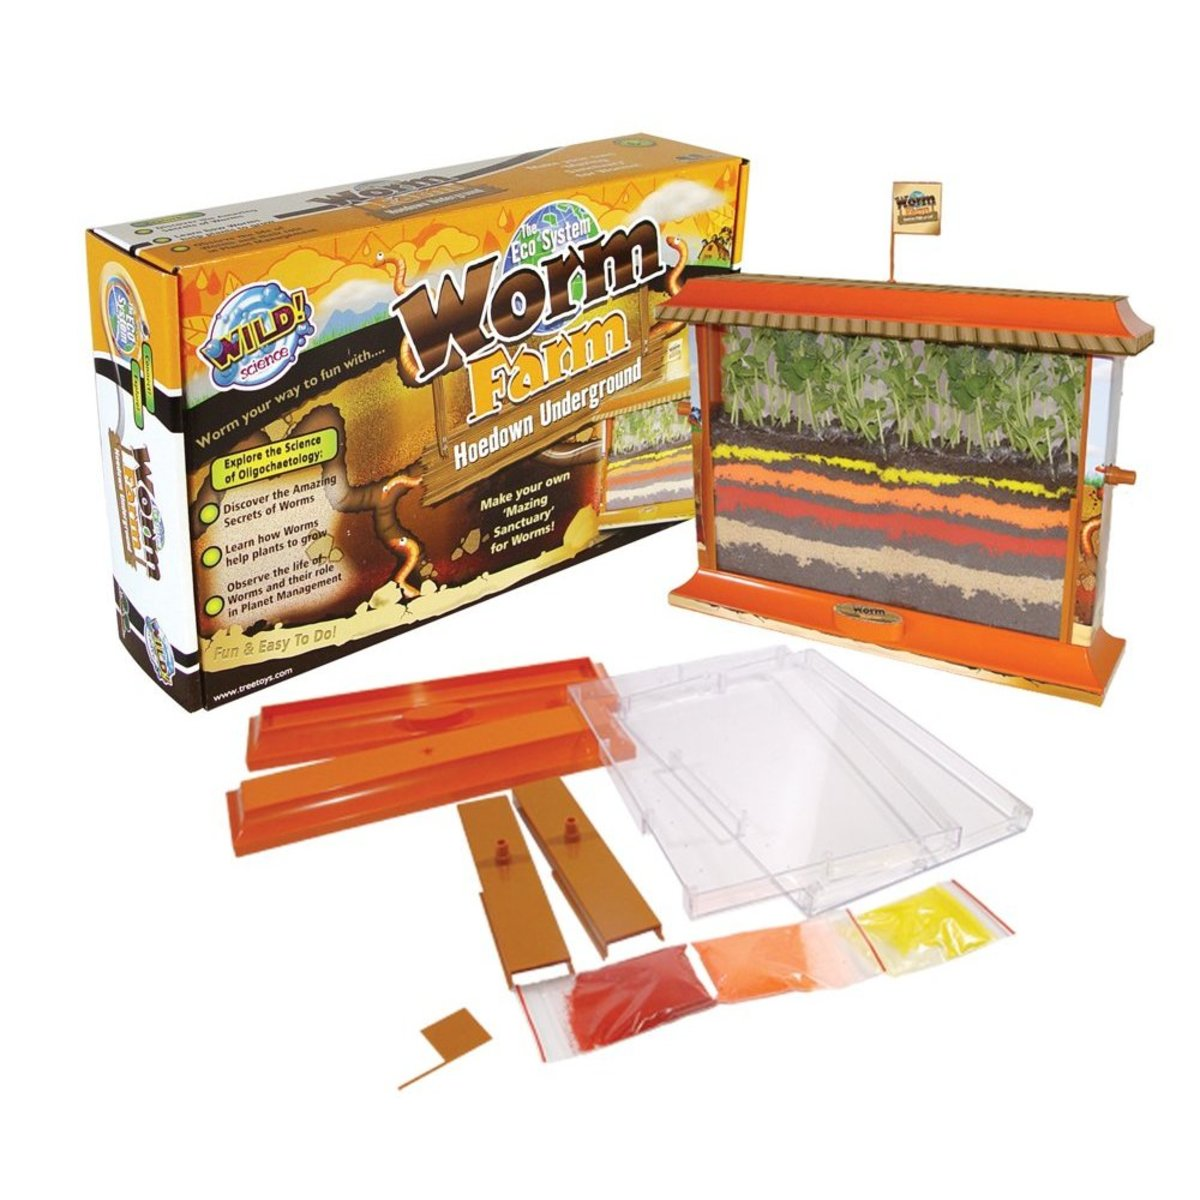 Good Pets For Kids: Worms